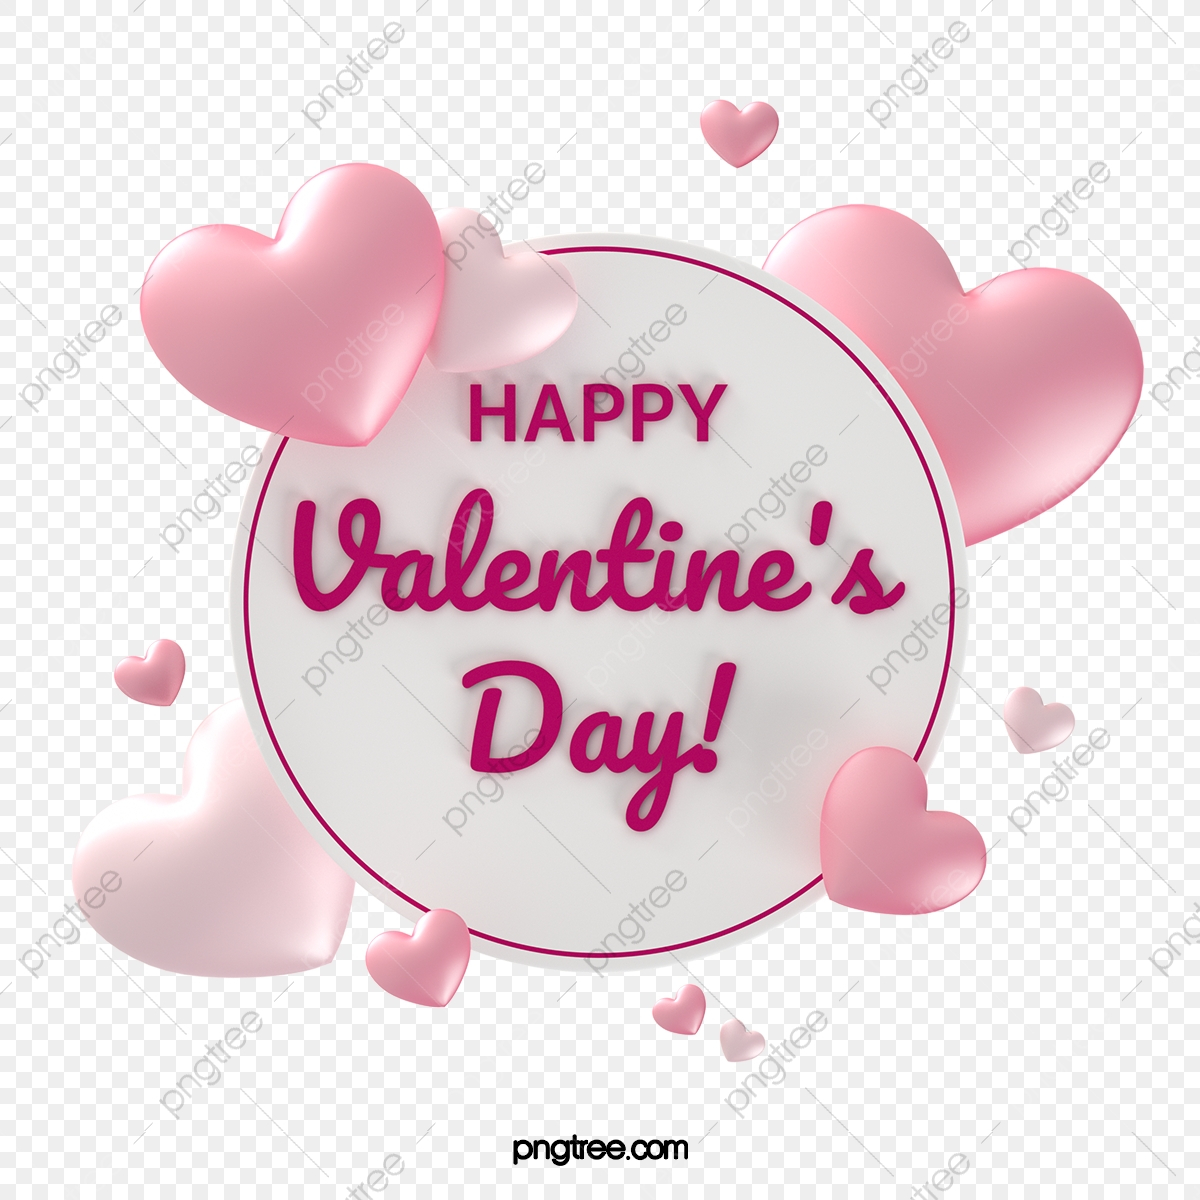 pngtree fresh pink valentines day background board png image